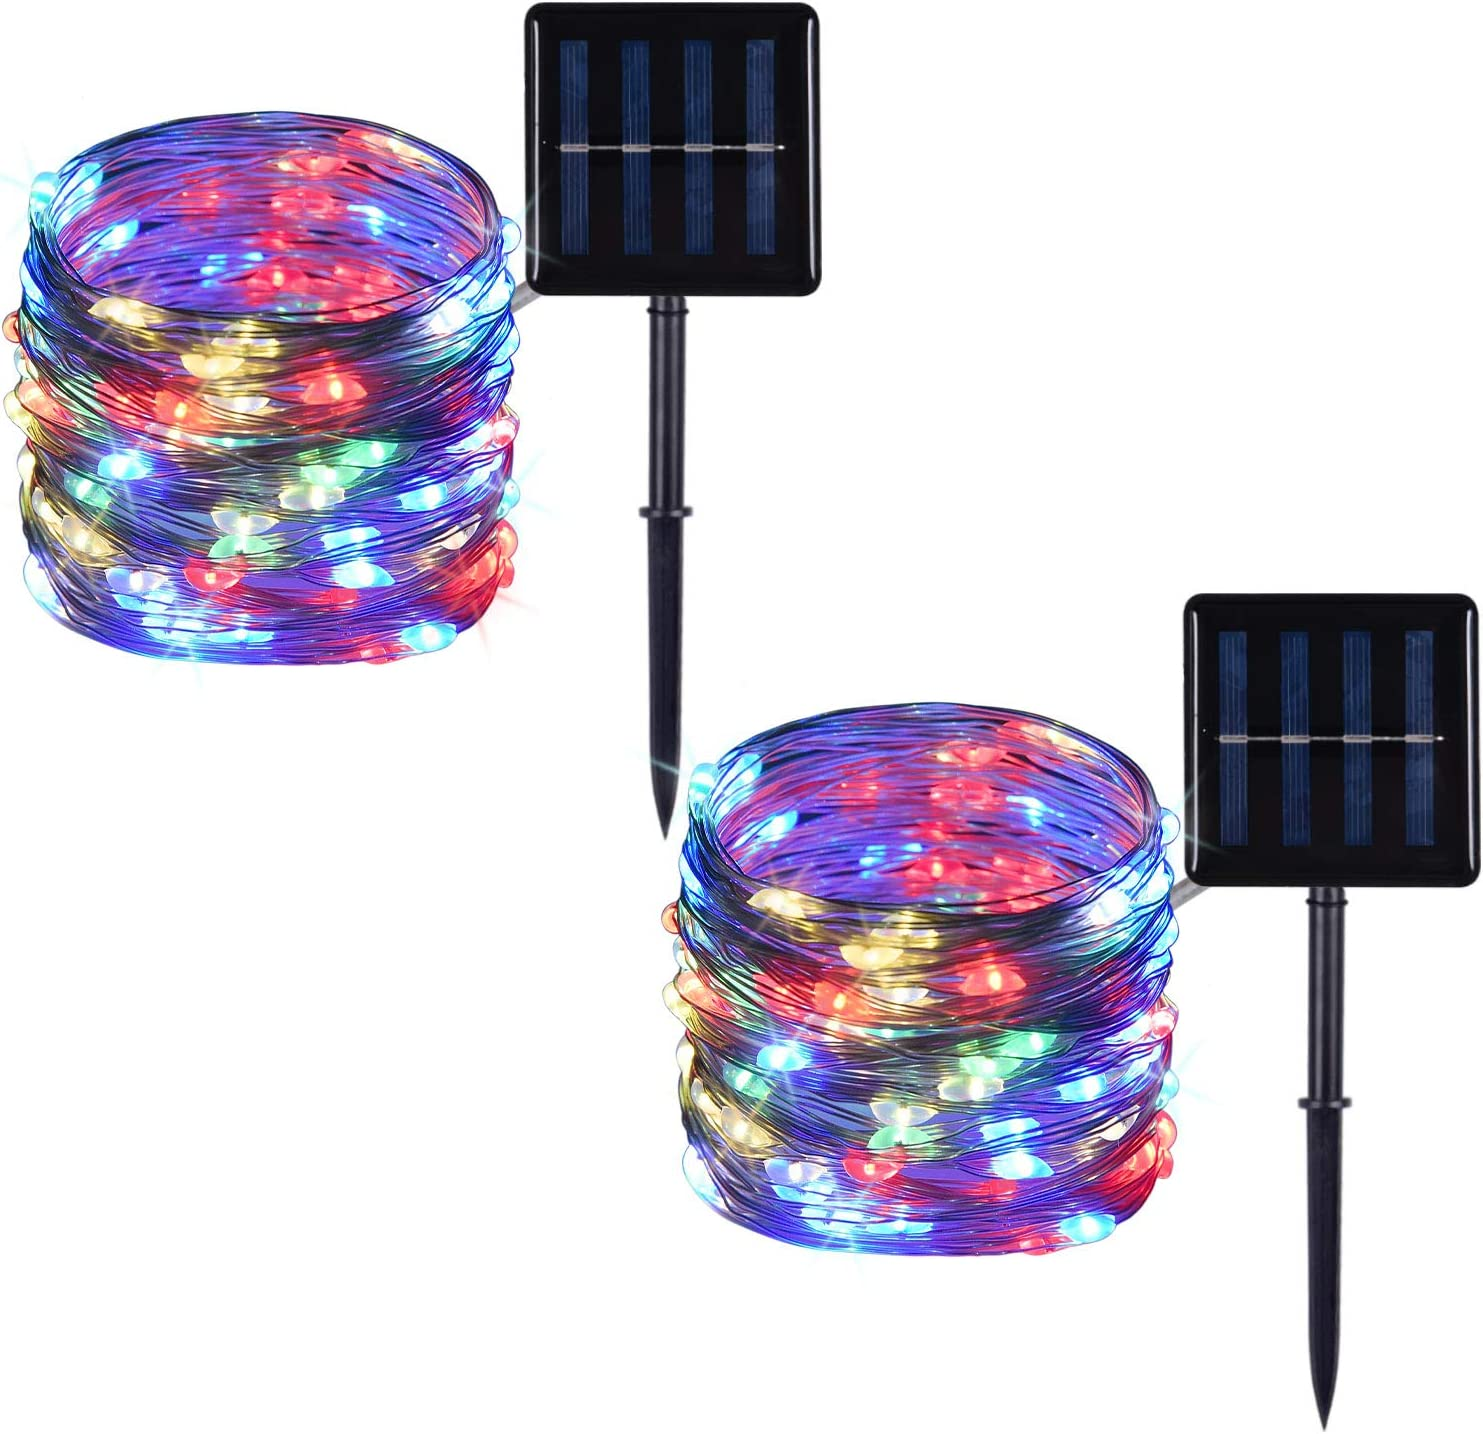 2 Pack 100 LED Solar Powered Copper Wire String Lights Outdoor, Waterproof, 8 Modes Fairy Lights for Garden, Patio, Party, Yard, Christmas (Multicolor)